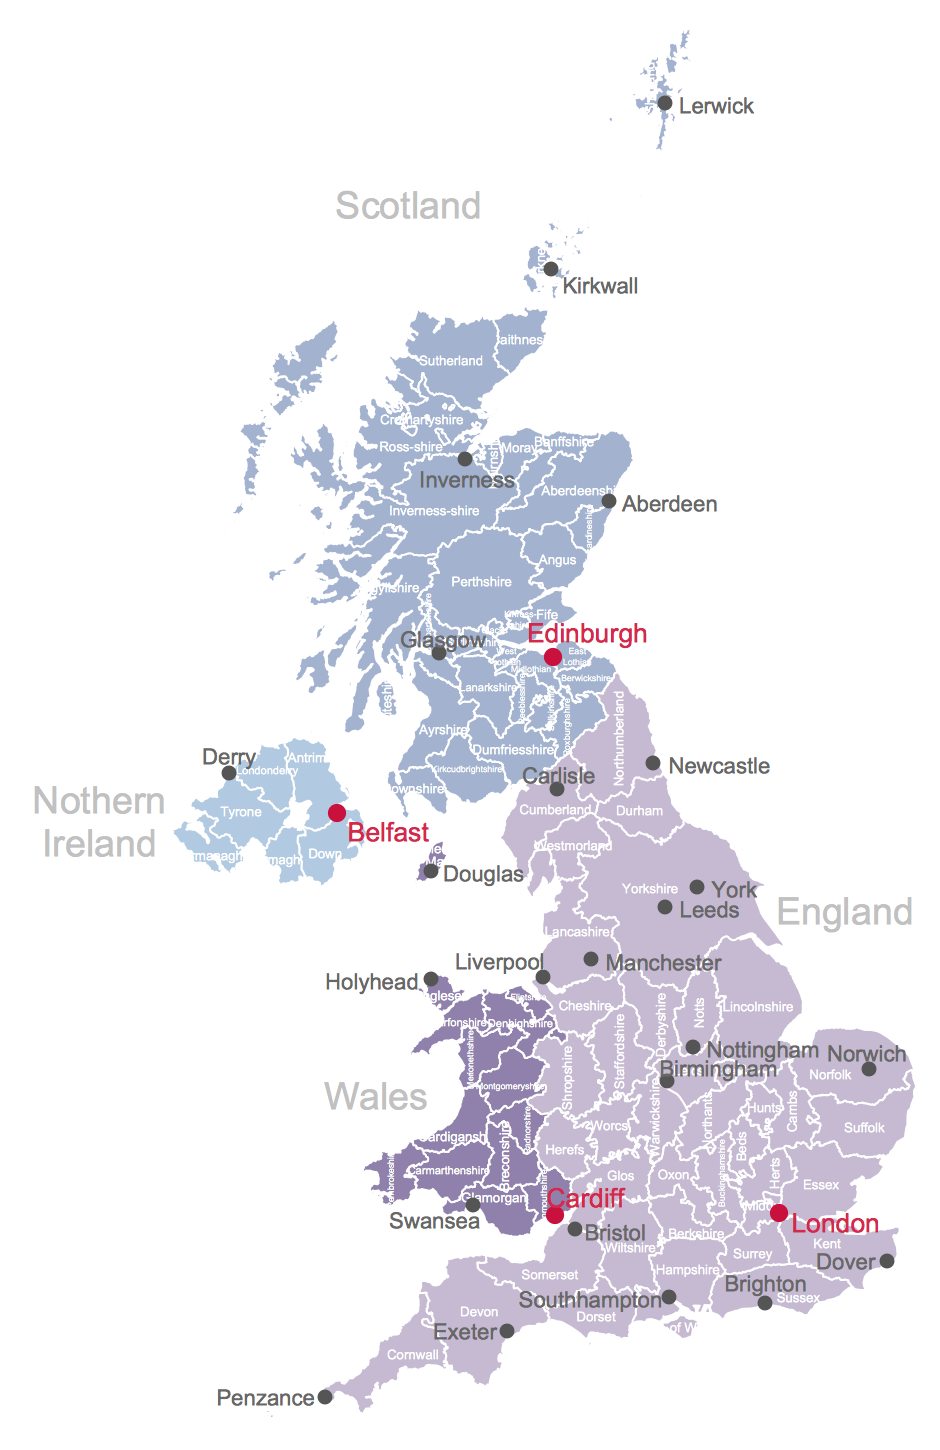 Map Of England Counties And Cities.Map Of Major Cities In Uk